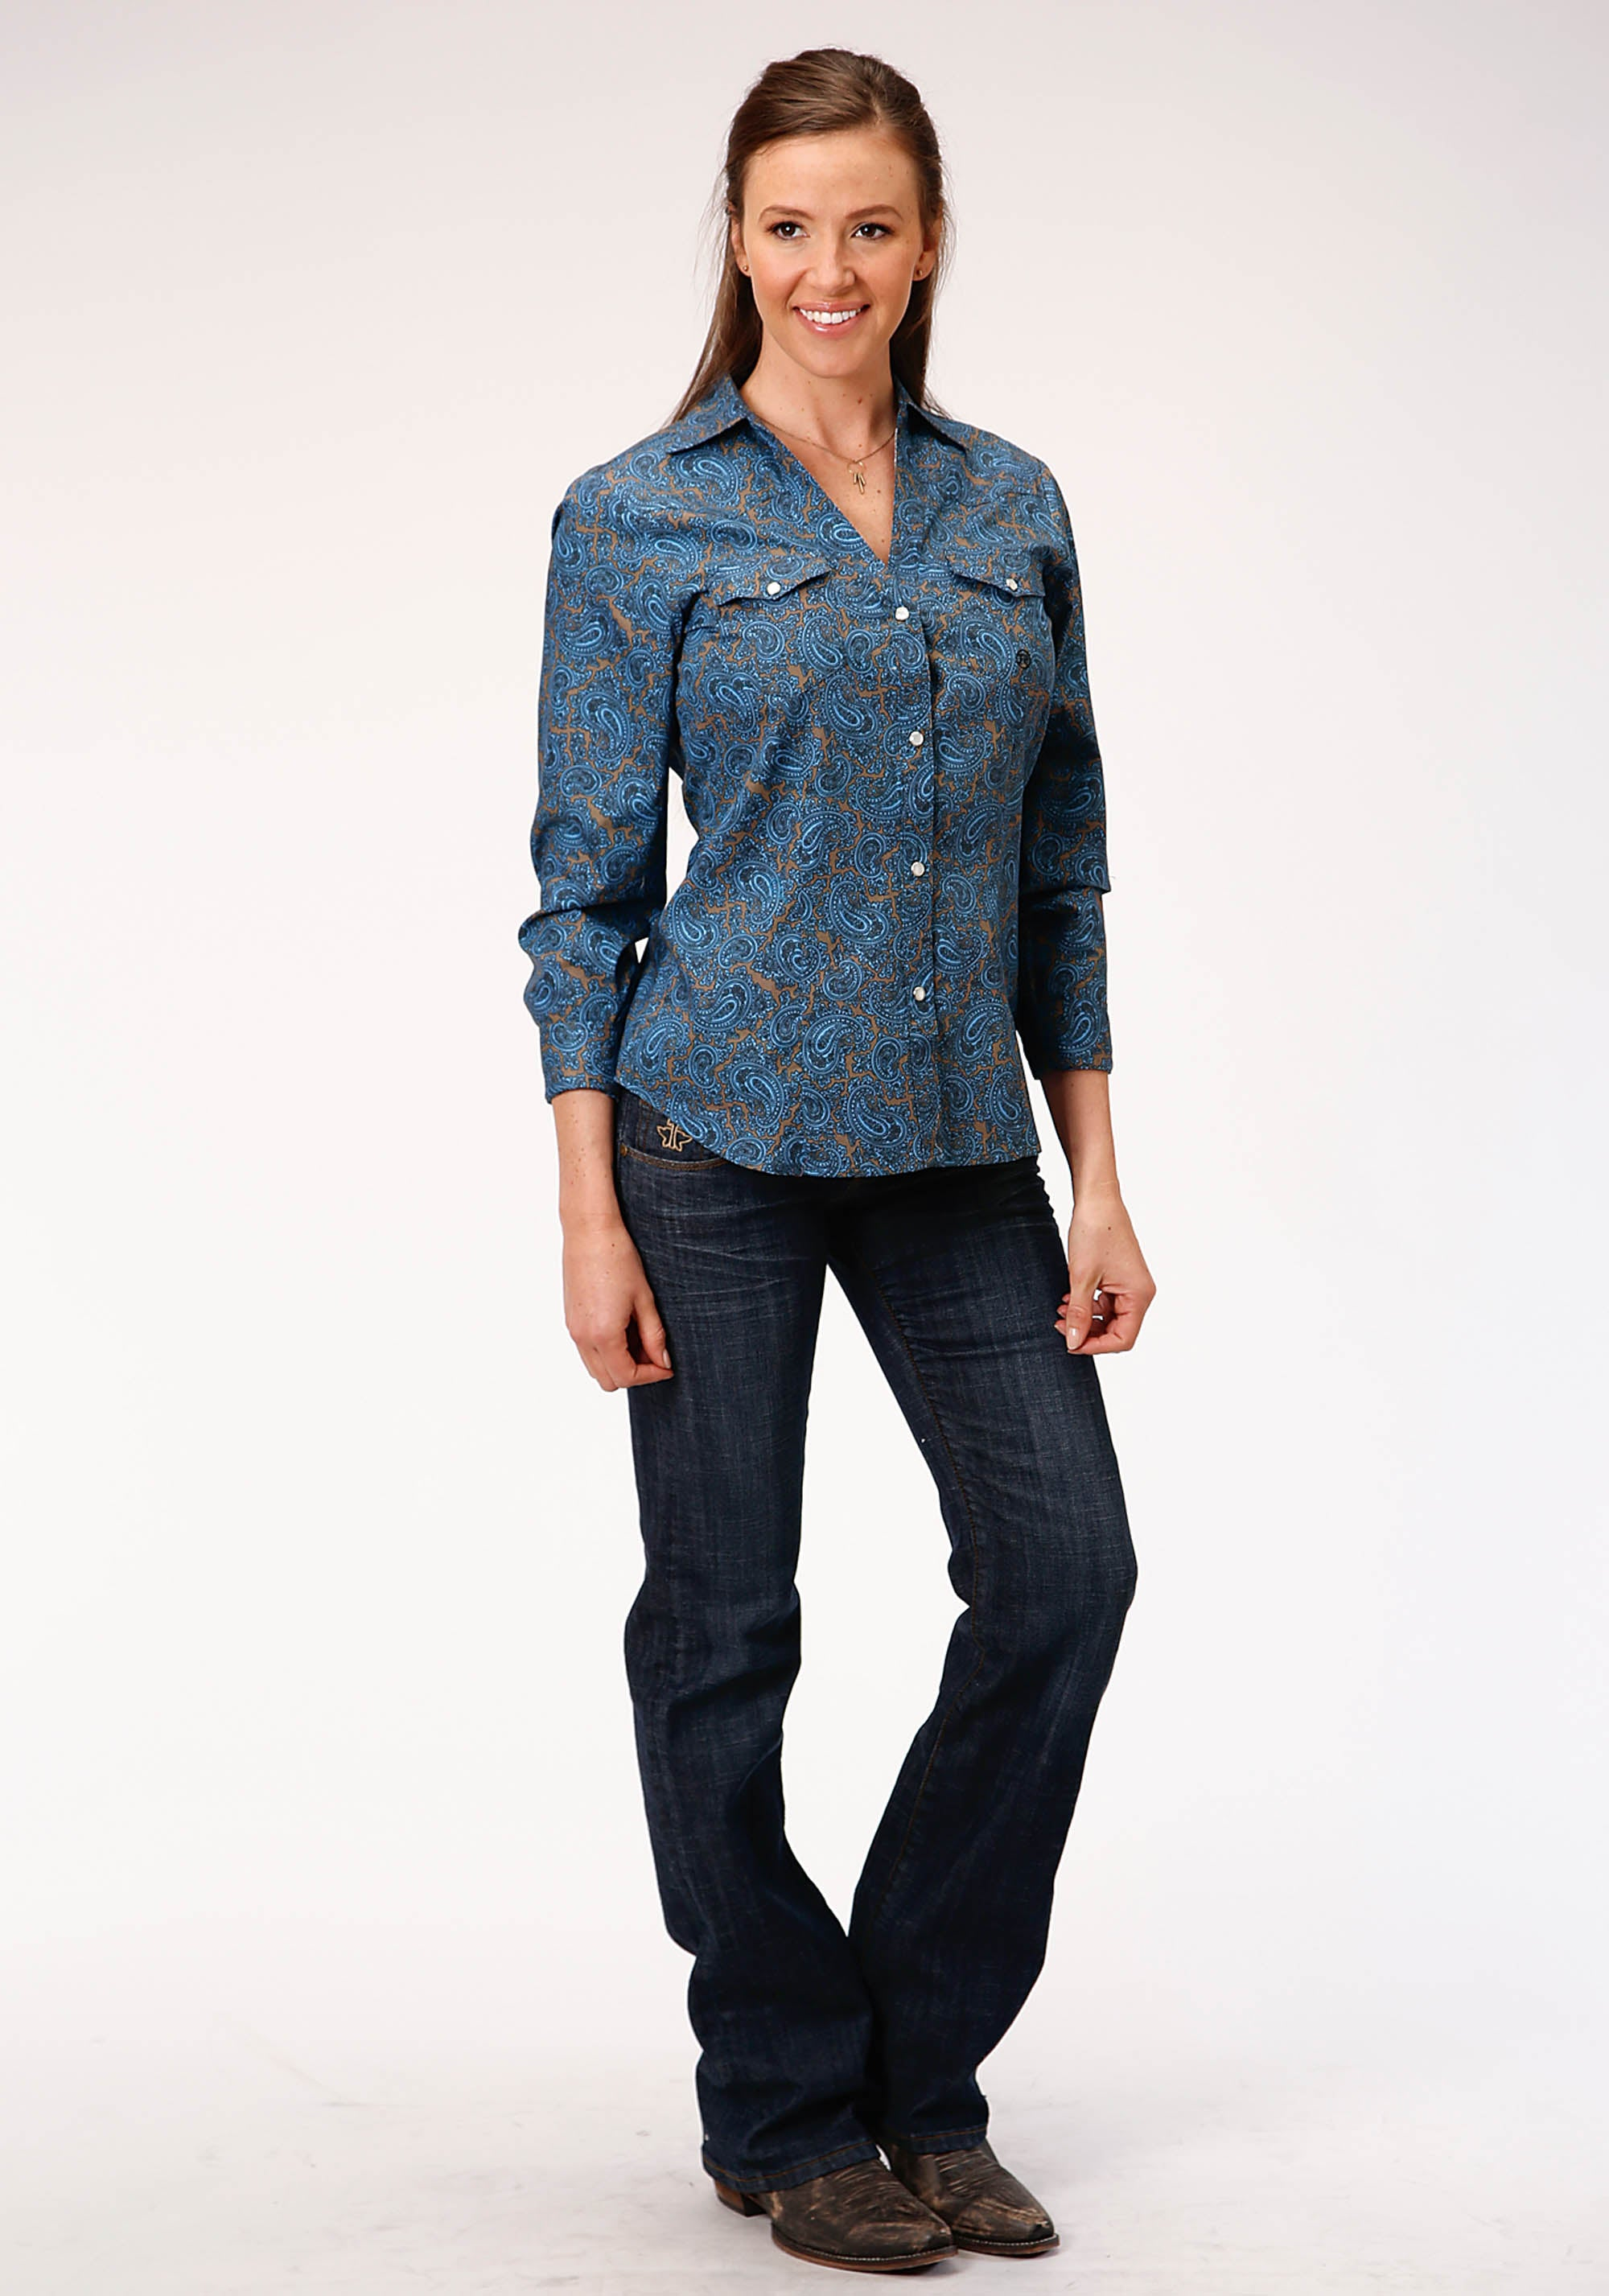 AMARILLO WOMENS BLUE 00267 BLUE PAISLEY CEDAR BROOK